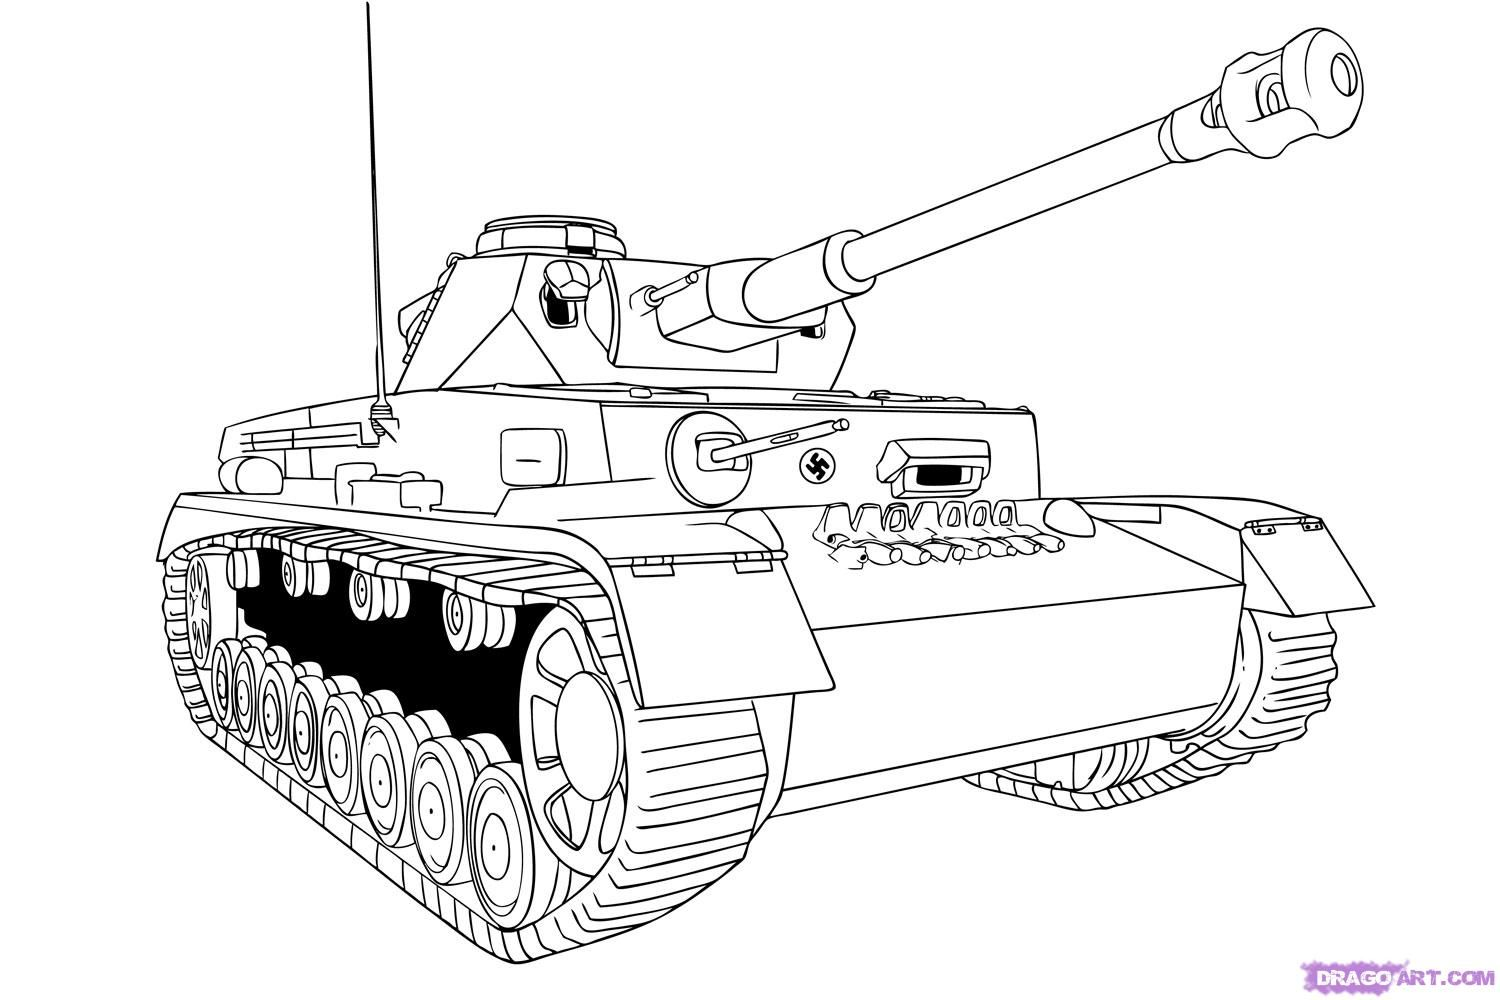 Drawings Of Tanks How To Draw A Tank Image Search Results Military Drawings Drawings Tank